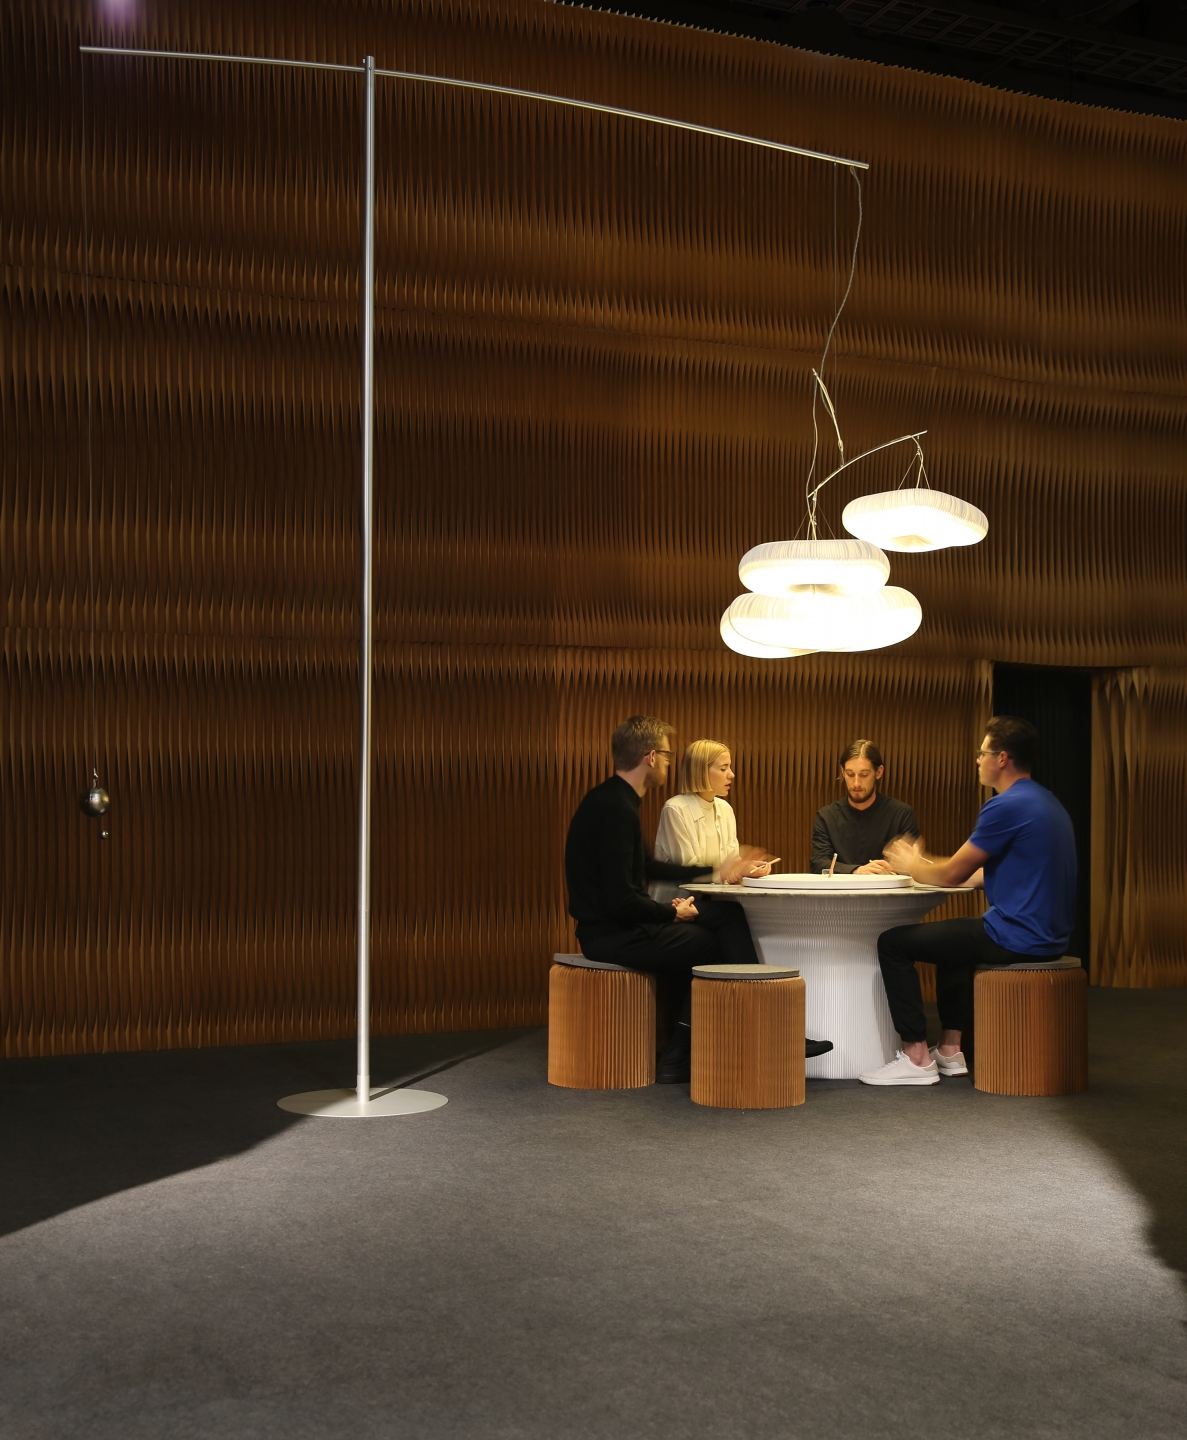 paper lighting and accordion paper seating by molo - a table of people chats animatedly below cloud mast